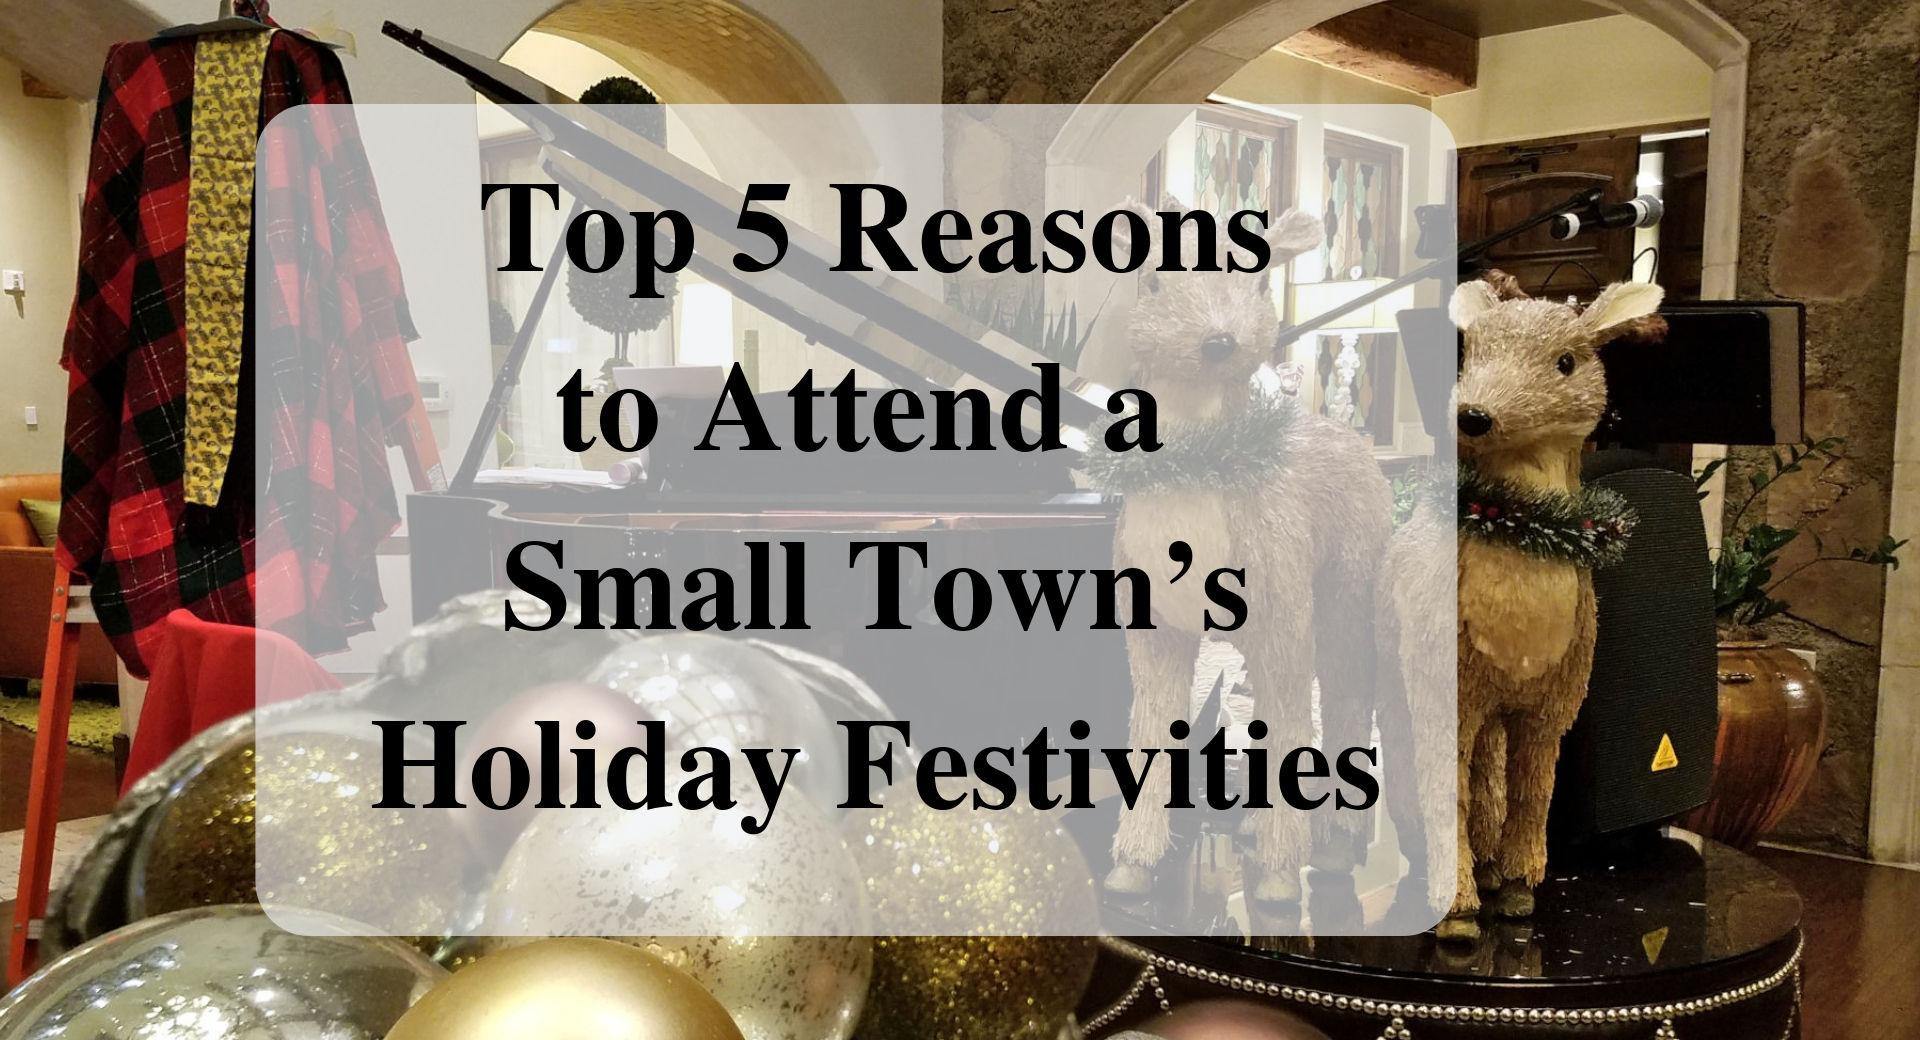 Top 5 Reasons to Attend a Small Town's Holiday Festivities